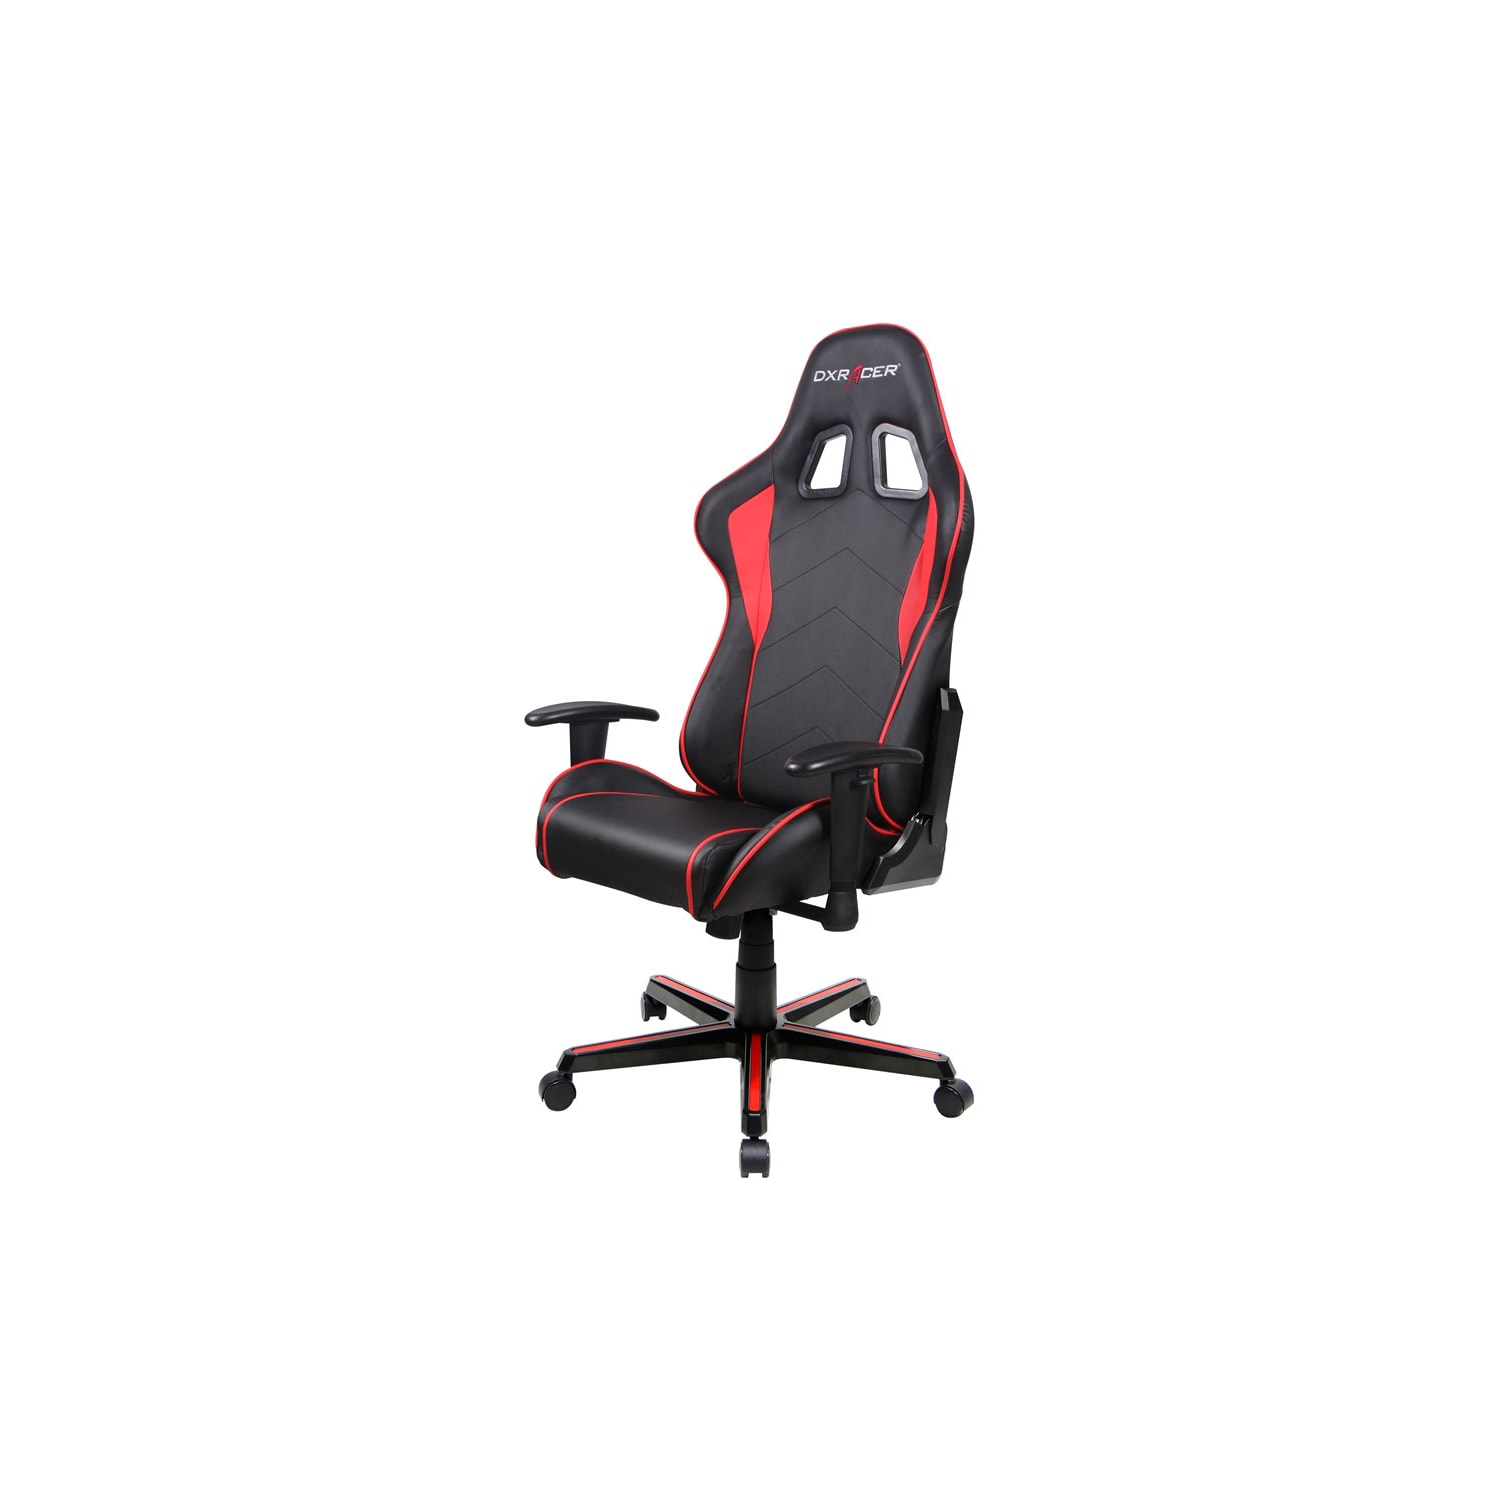 Buy DXRacer Formula FL08 Gaming Chair - Sparco Style Neck